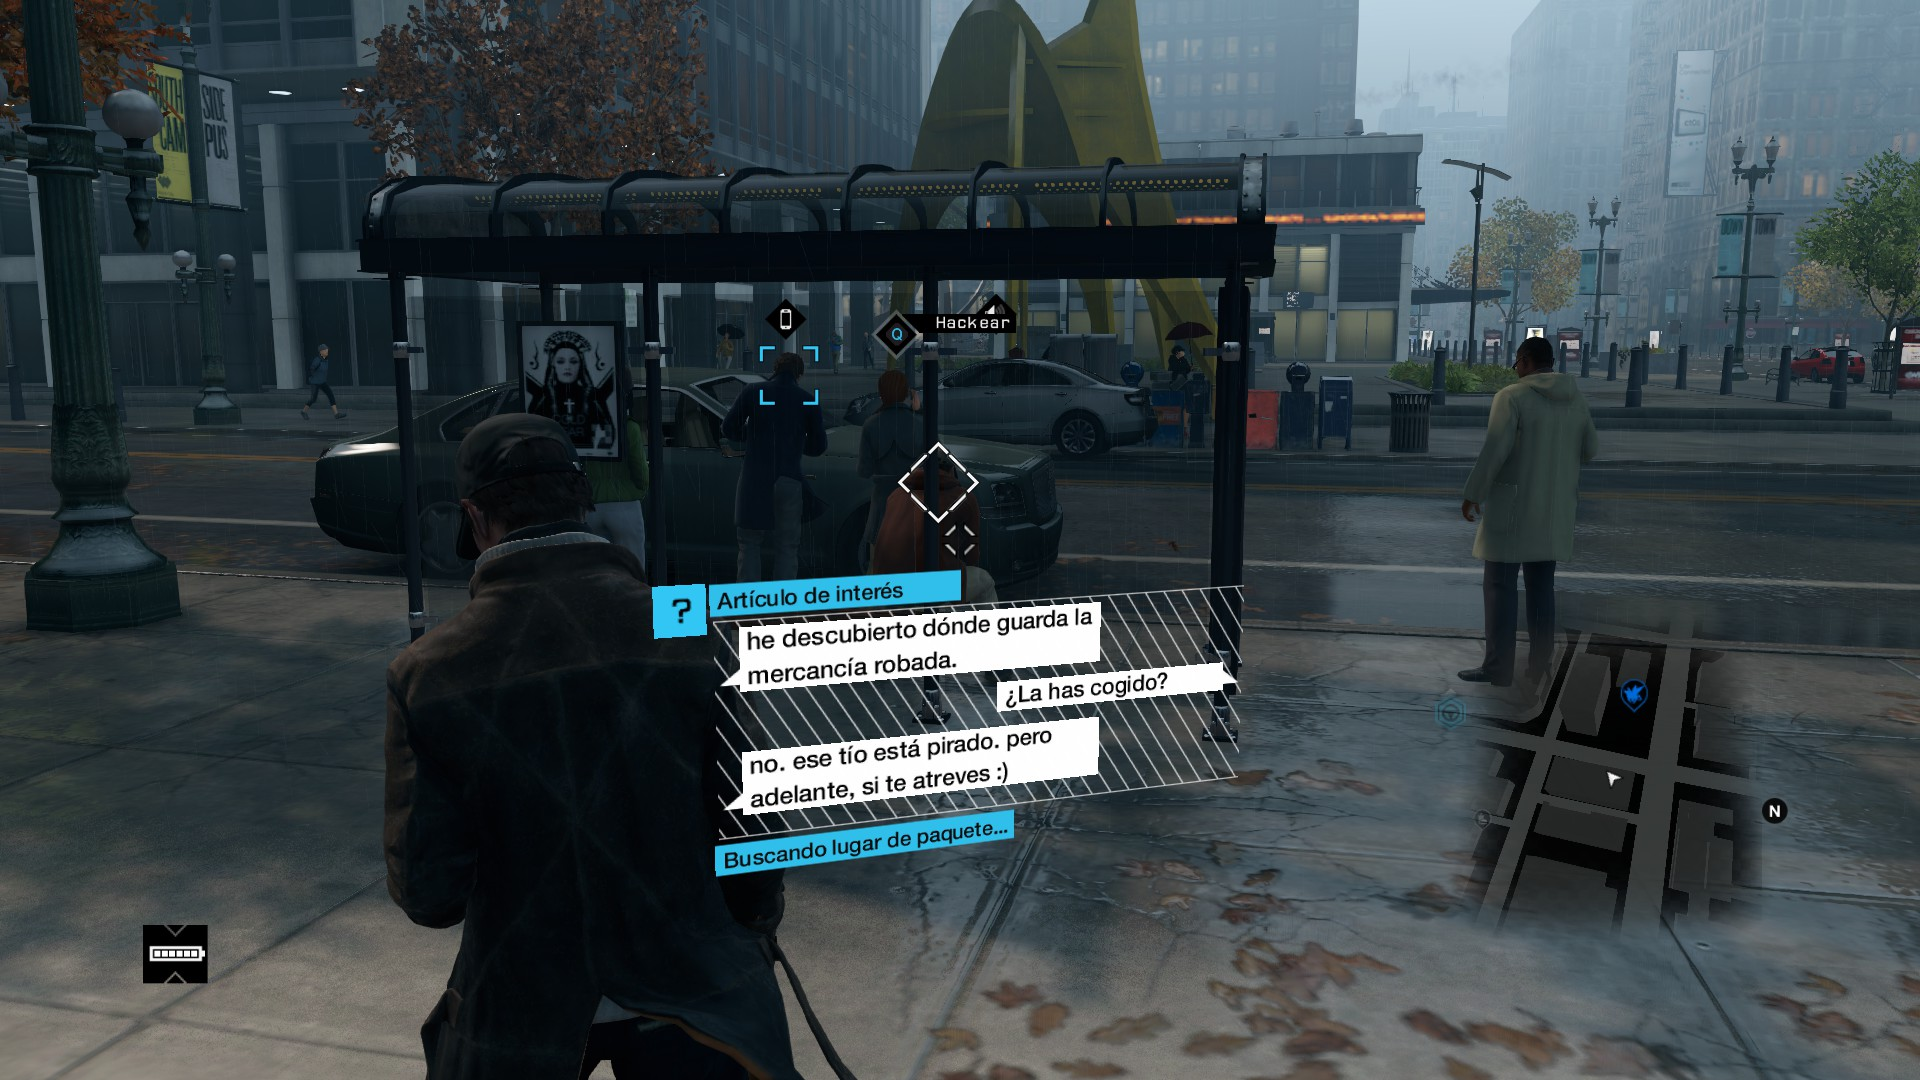 Watch_Dogs2017-11-25-13-55-49